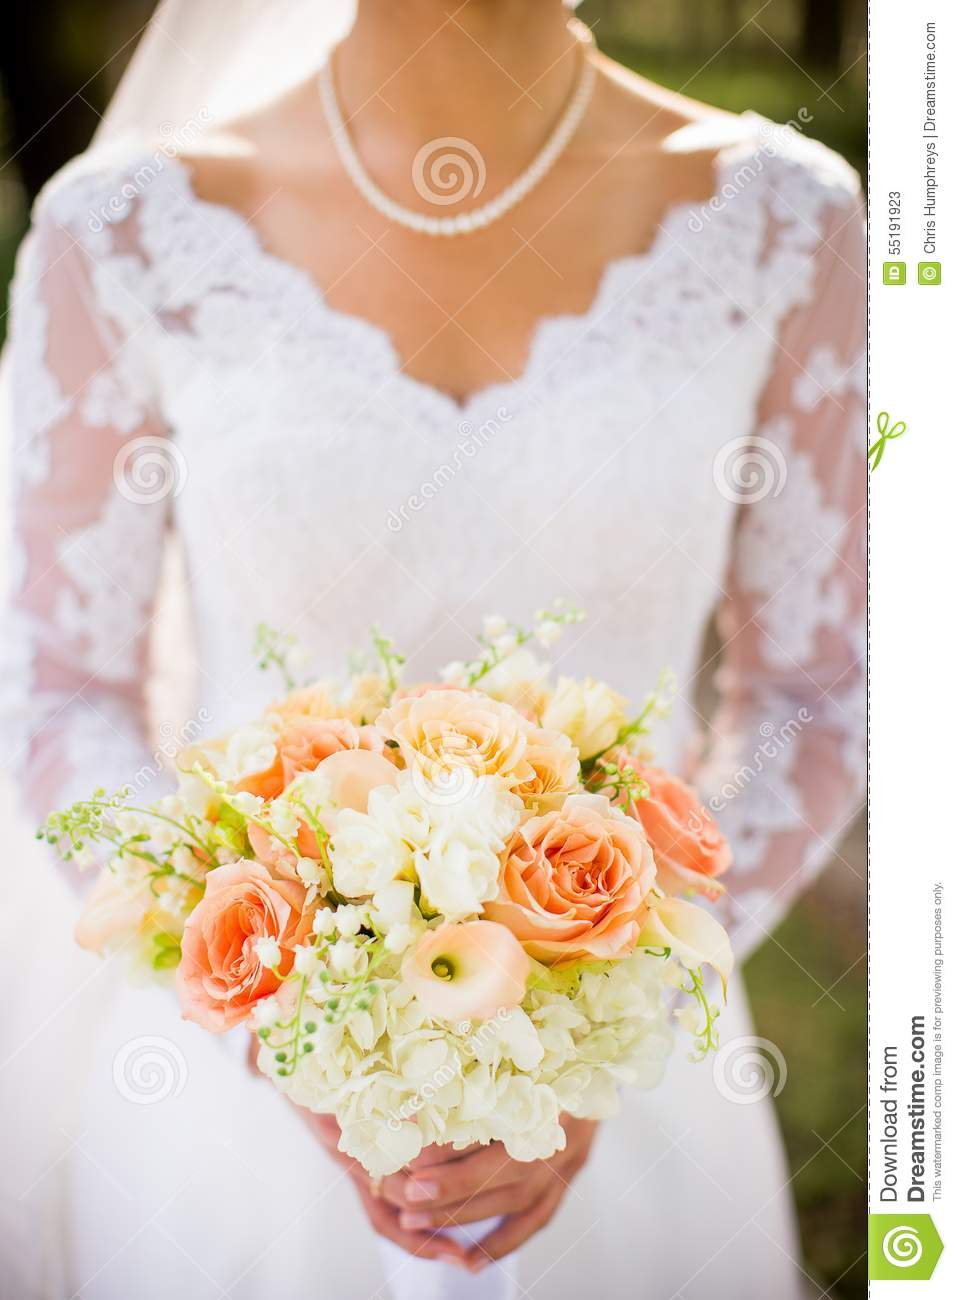 Traditional bride with beautiful orange pink and white wedding traditional bride with beautiful orange pink and white wedding bouquet of flowers mightylinksfo